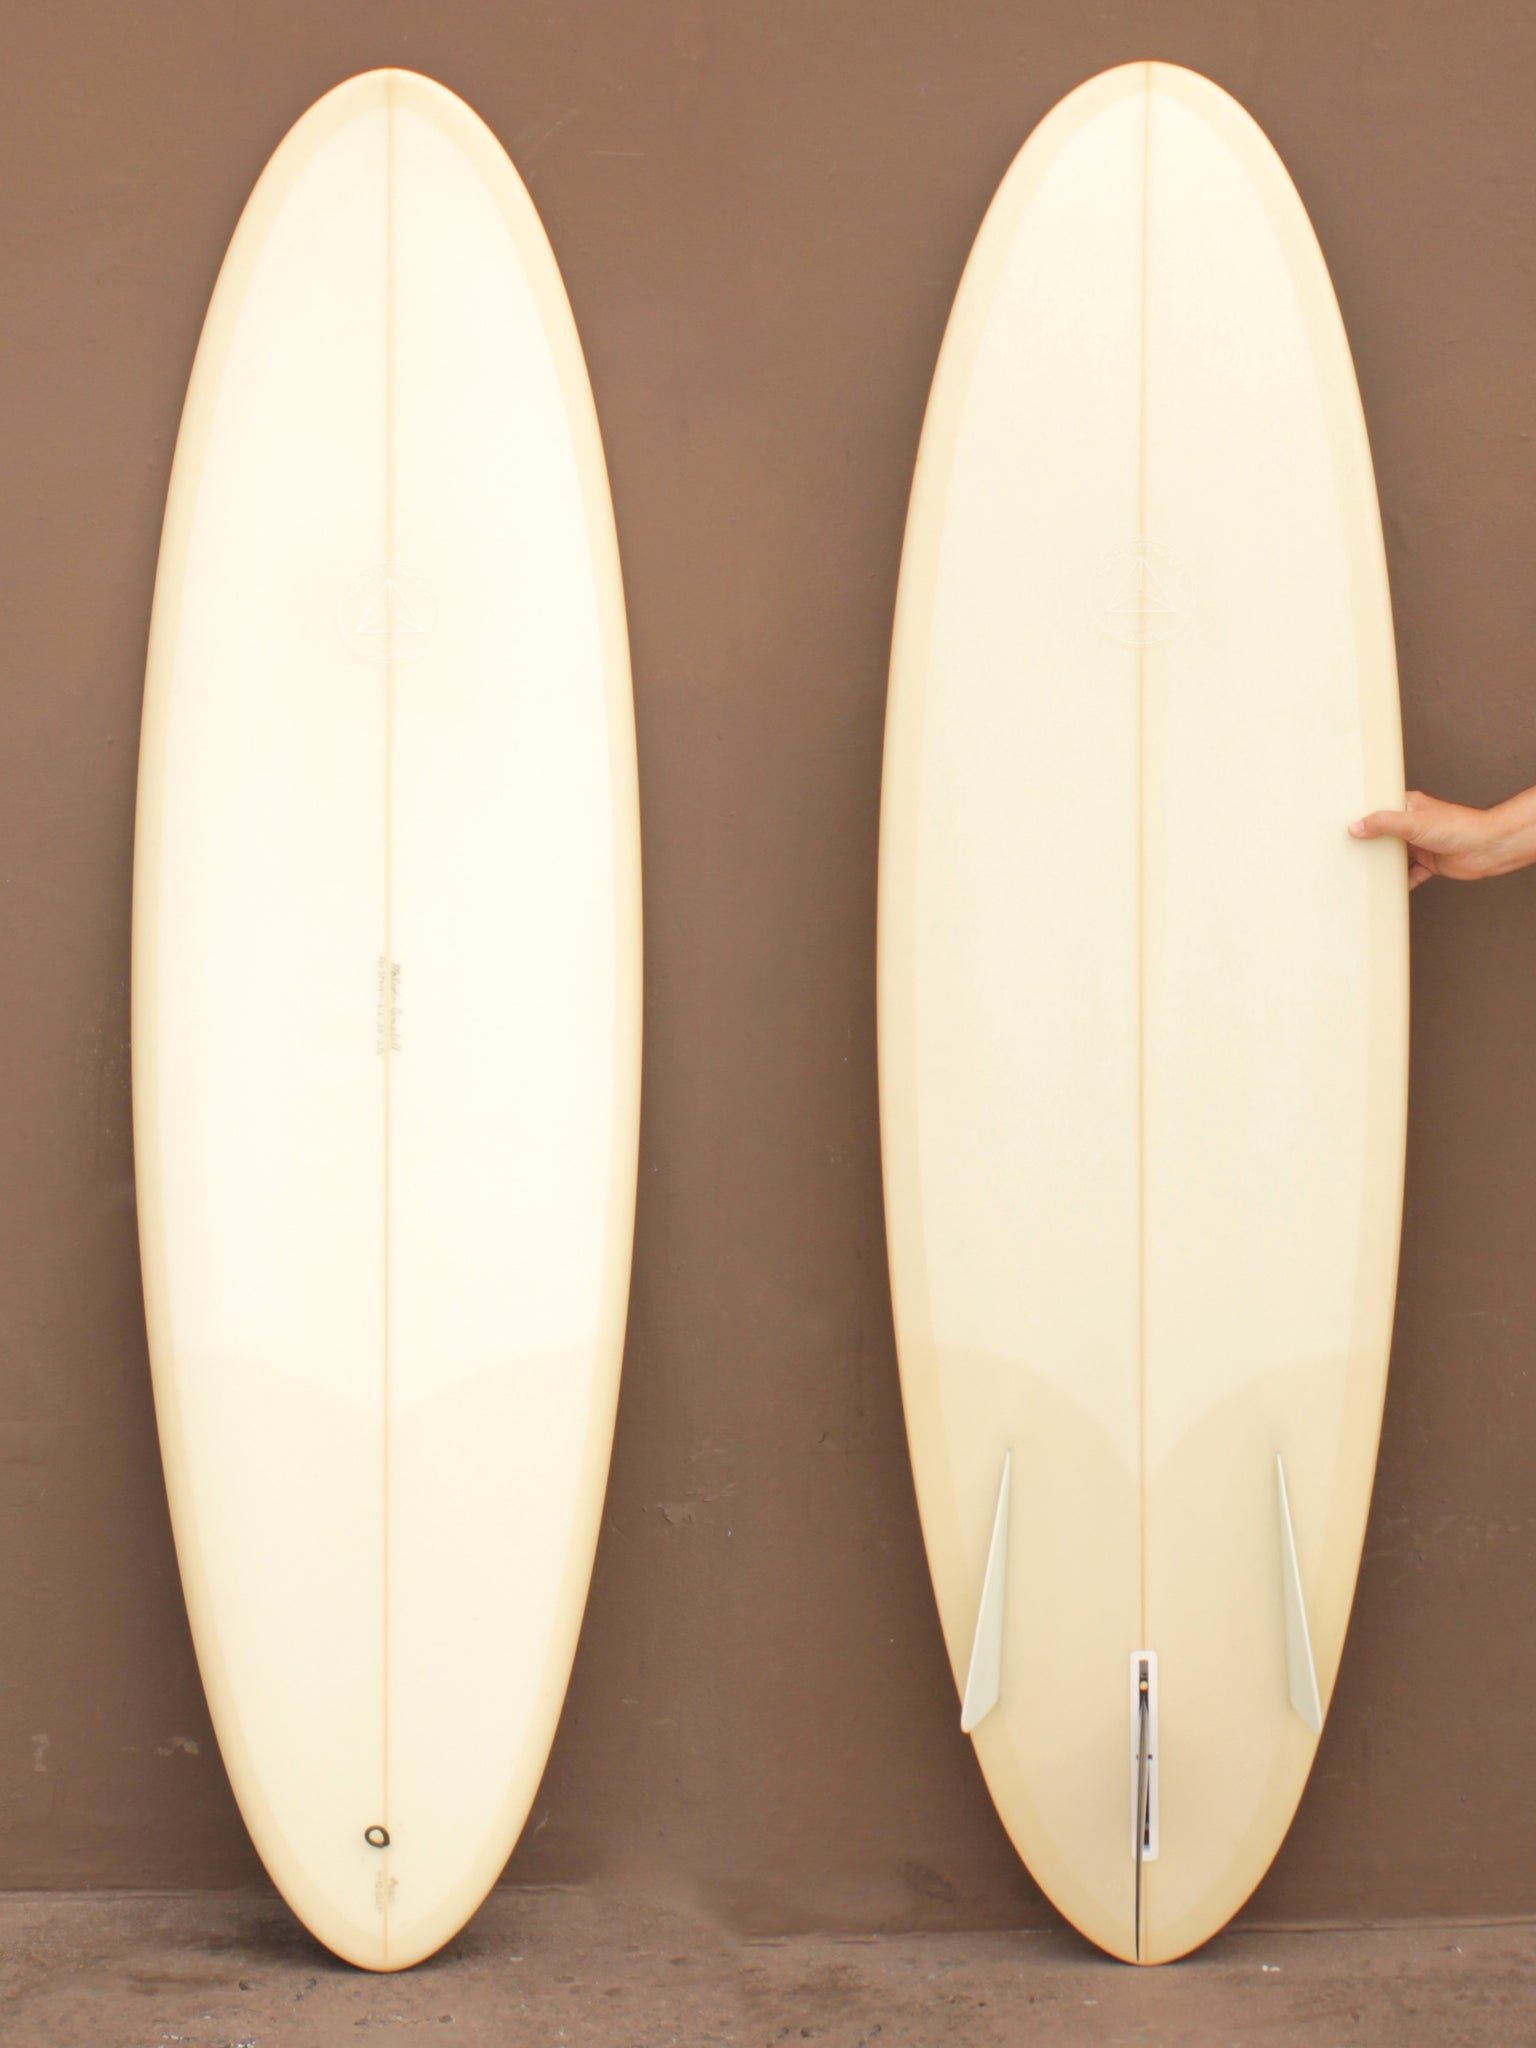 6'2 Campbell Brothers 3 Fin Egg (Used)